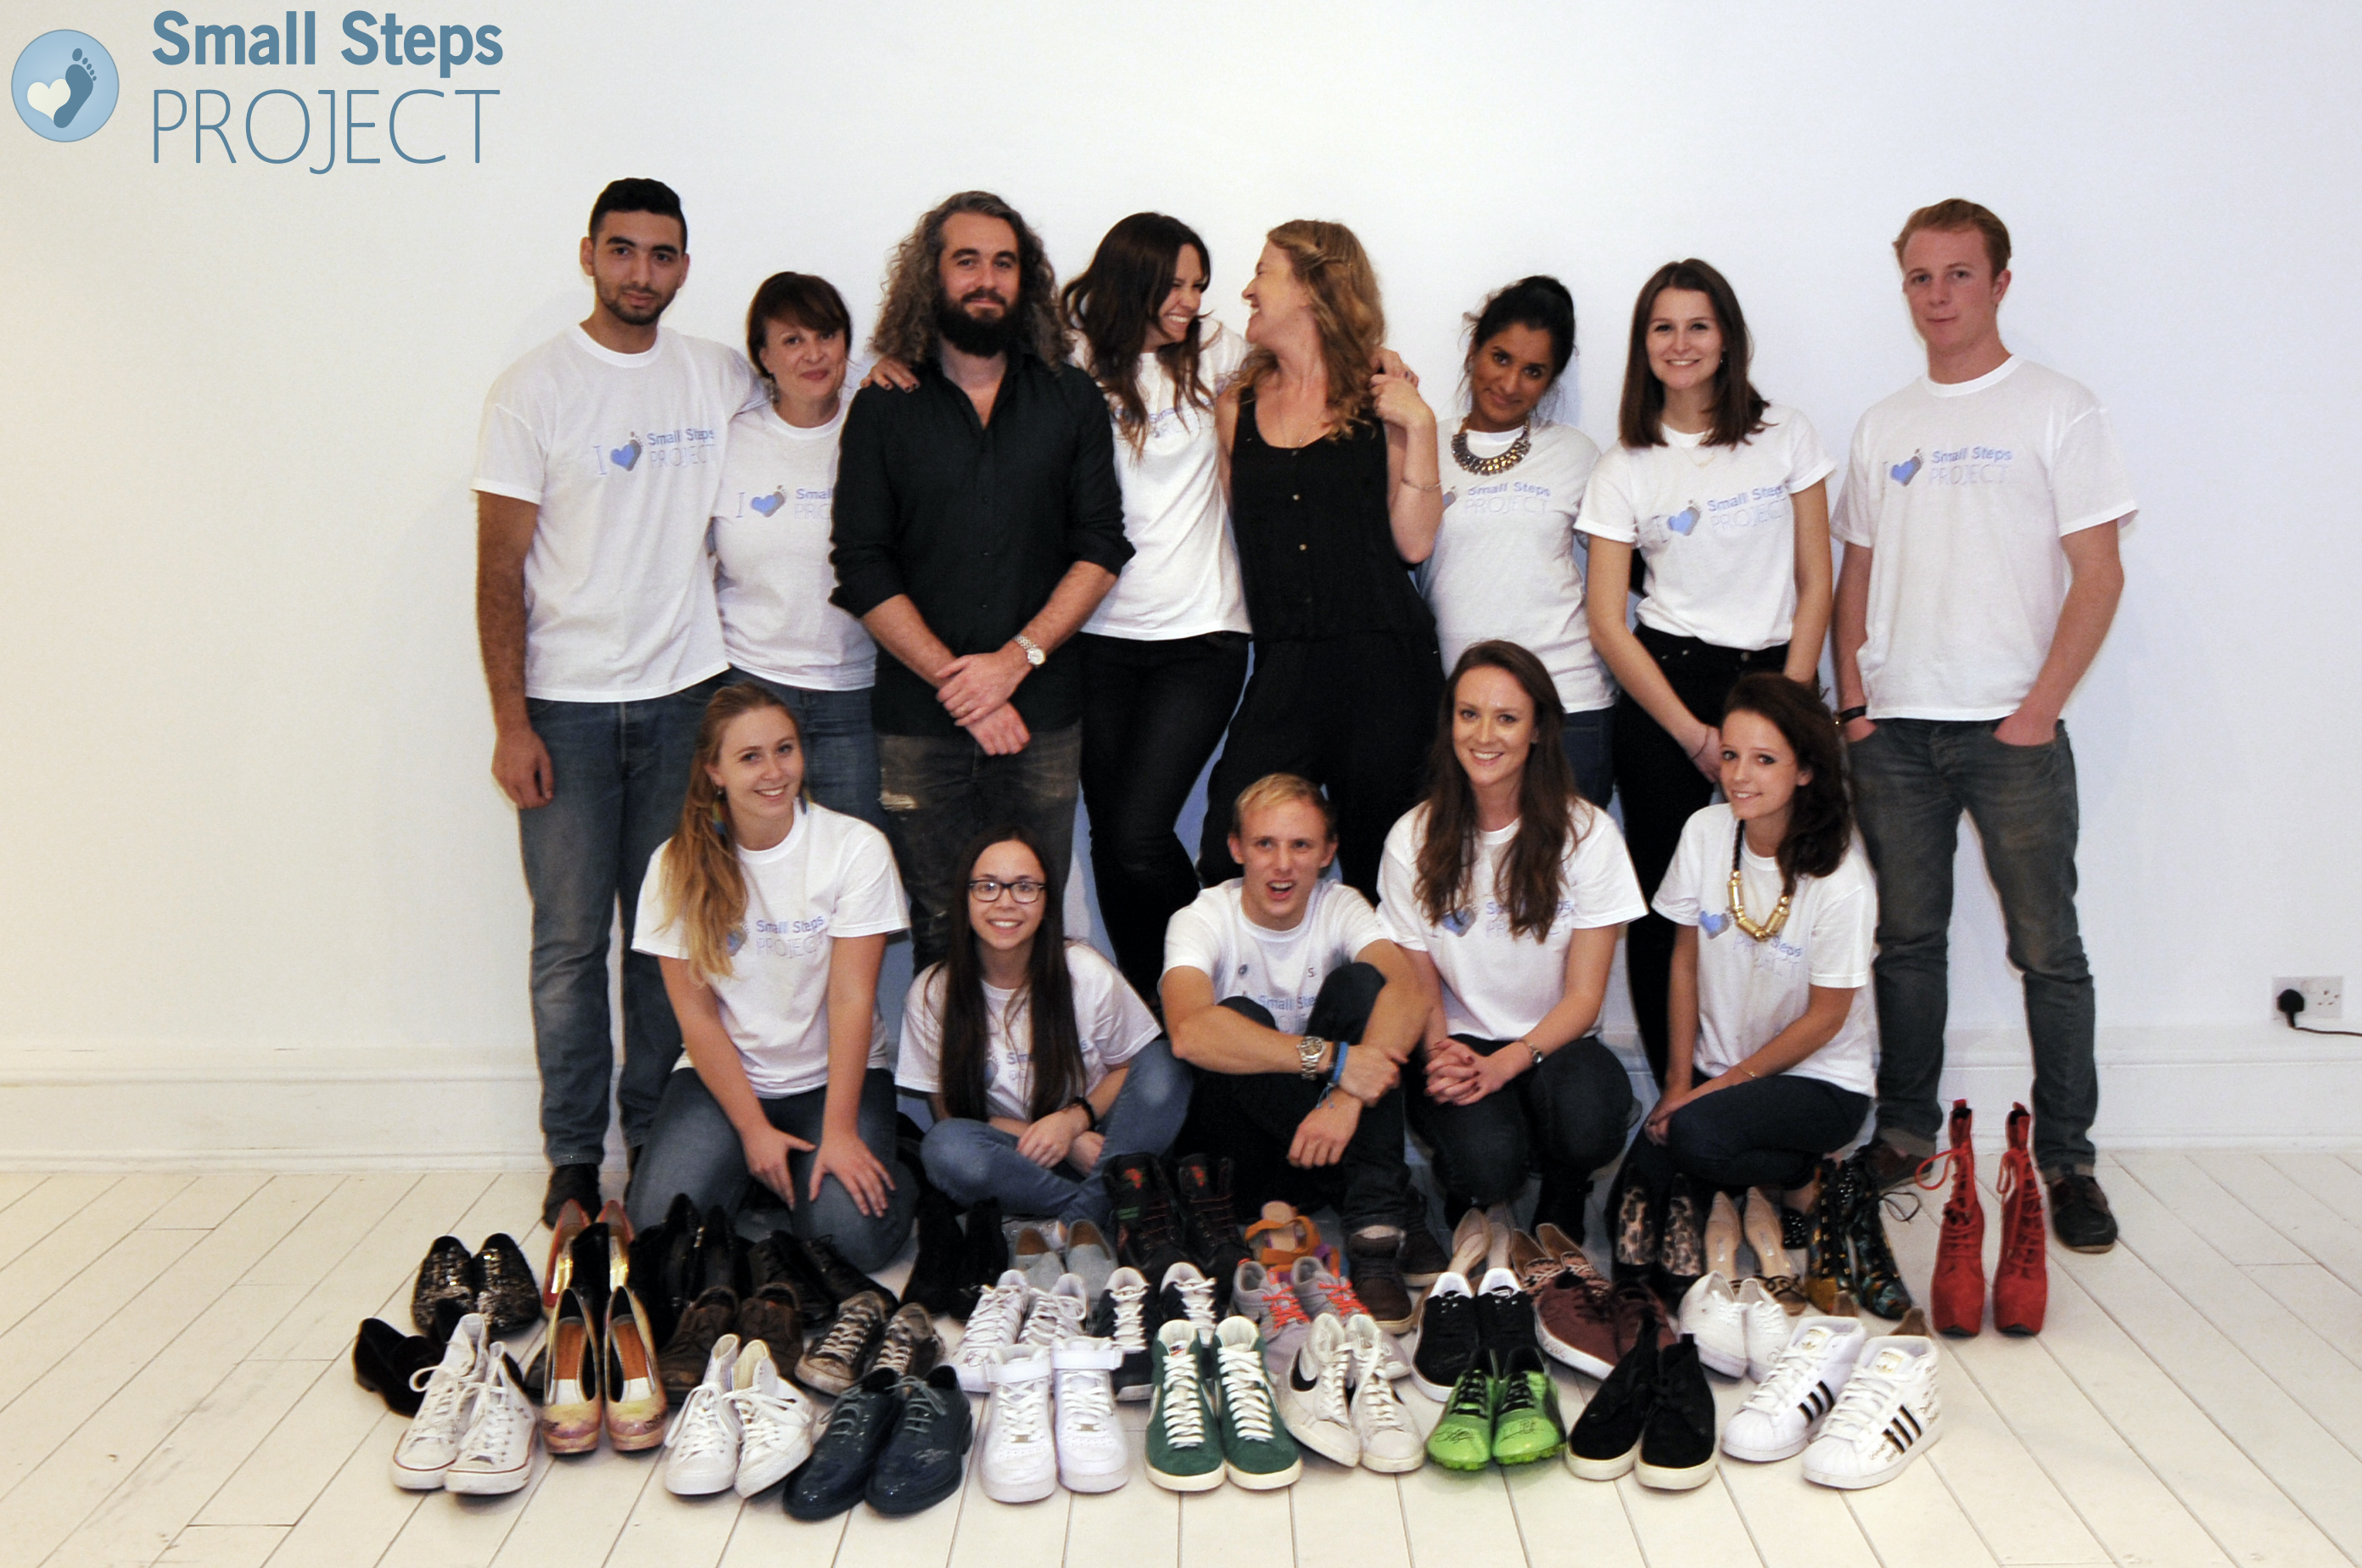 Small Steps Project Shoe View